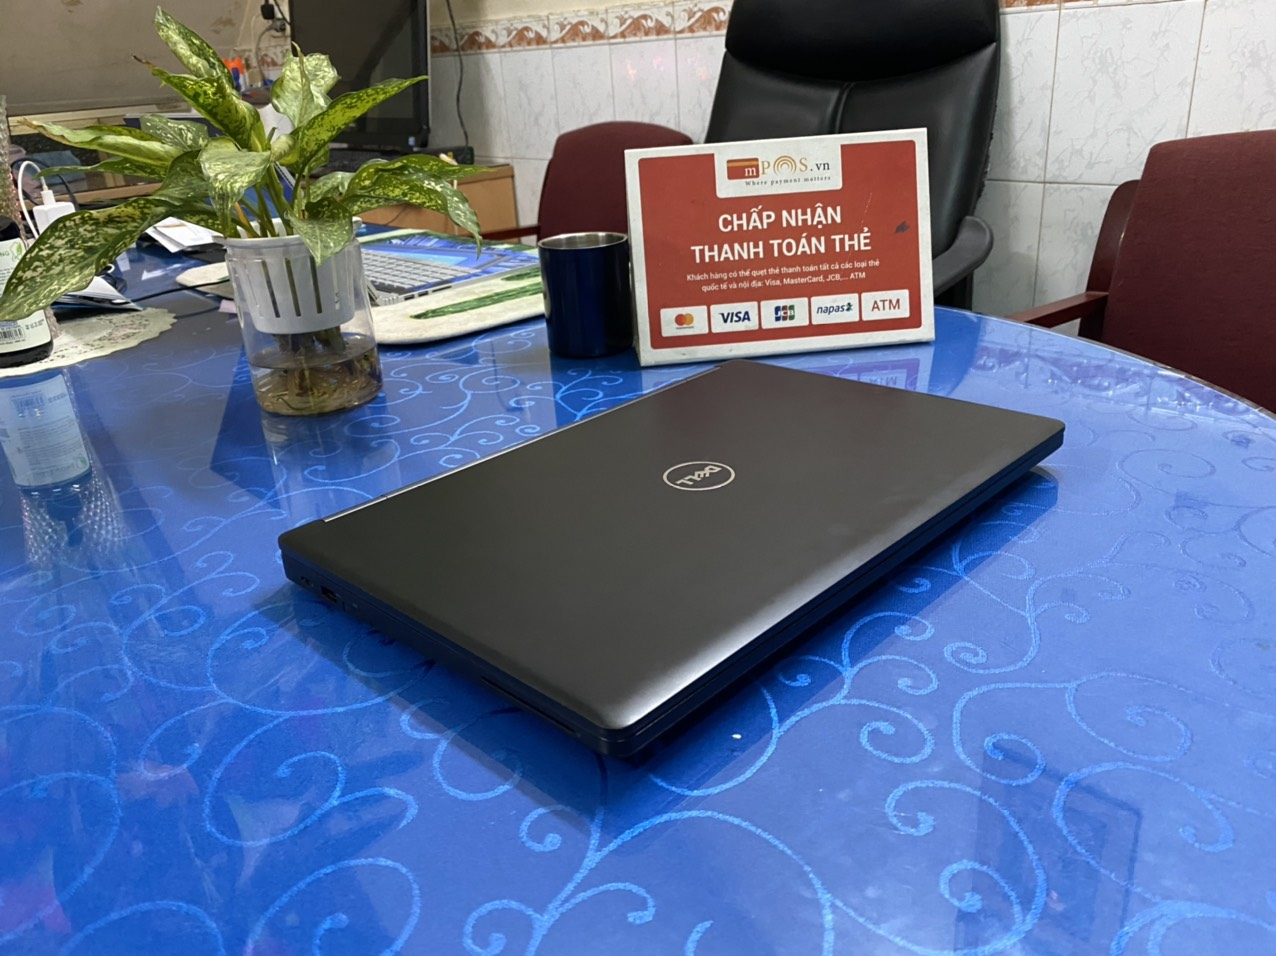 DELL LATITUDE E5580 I7 7820HQ 8GB 256GB 15.6